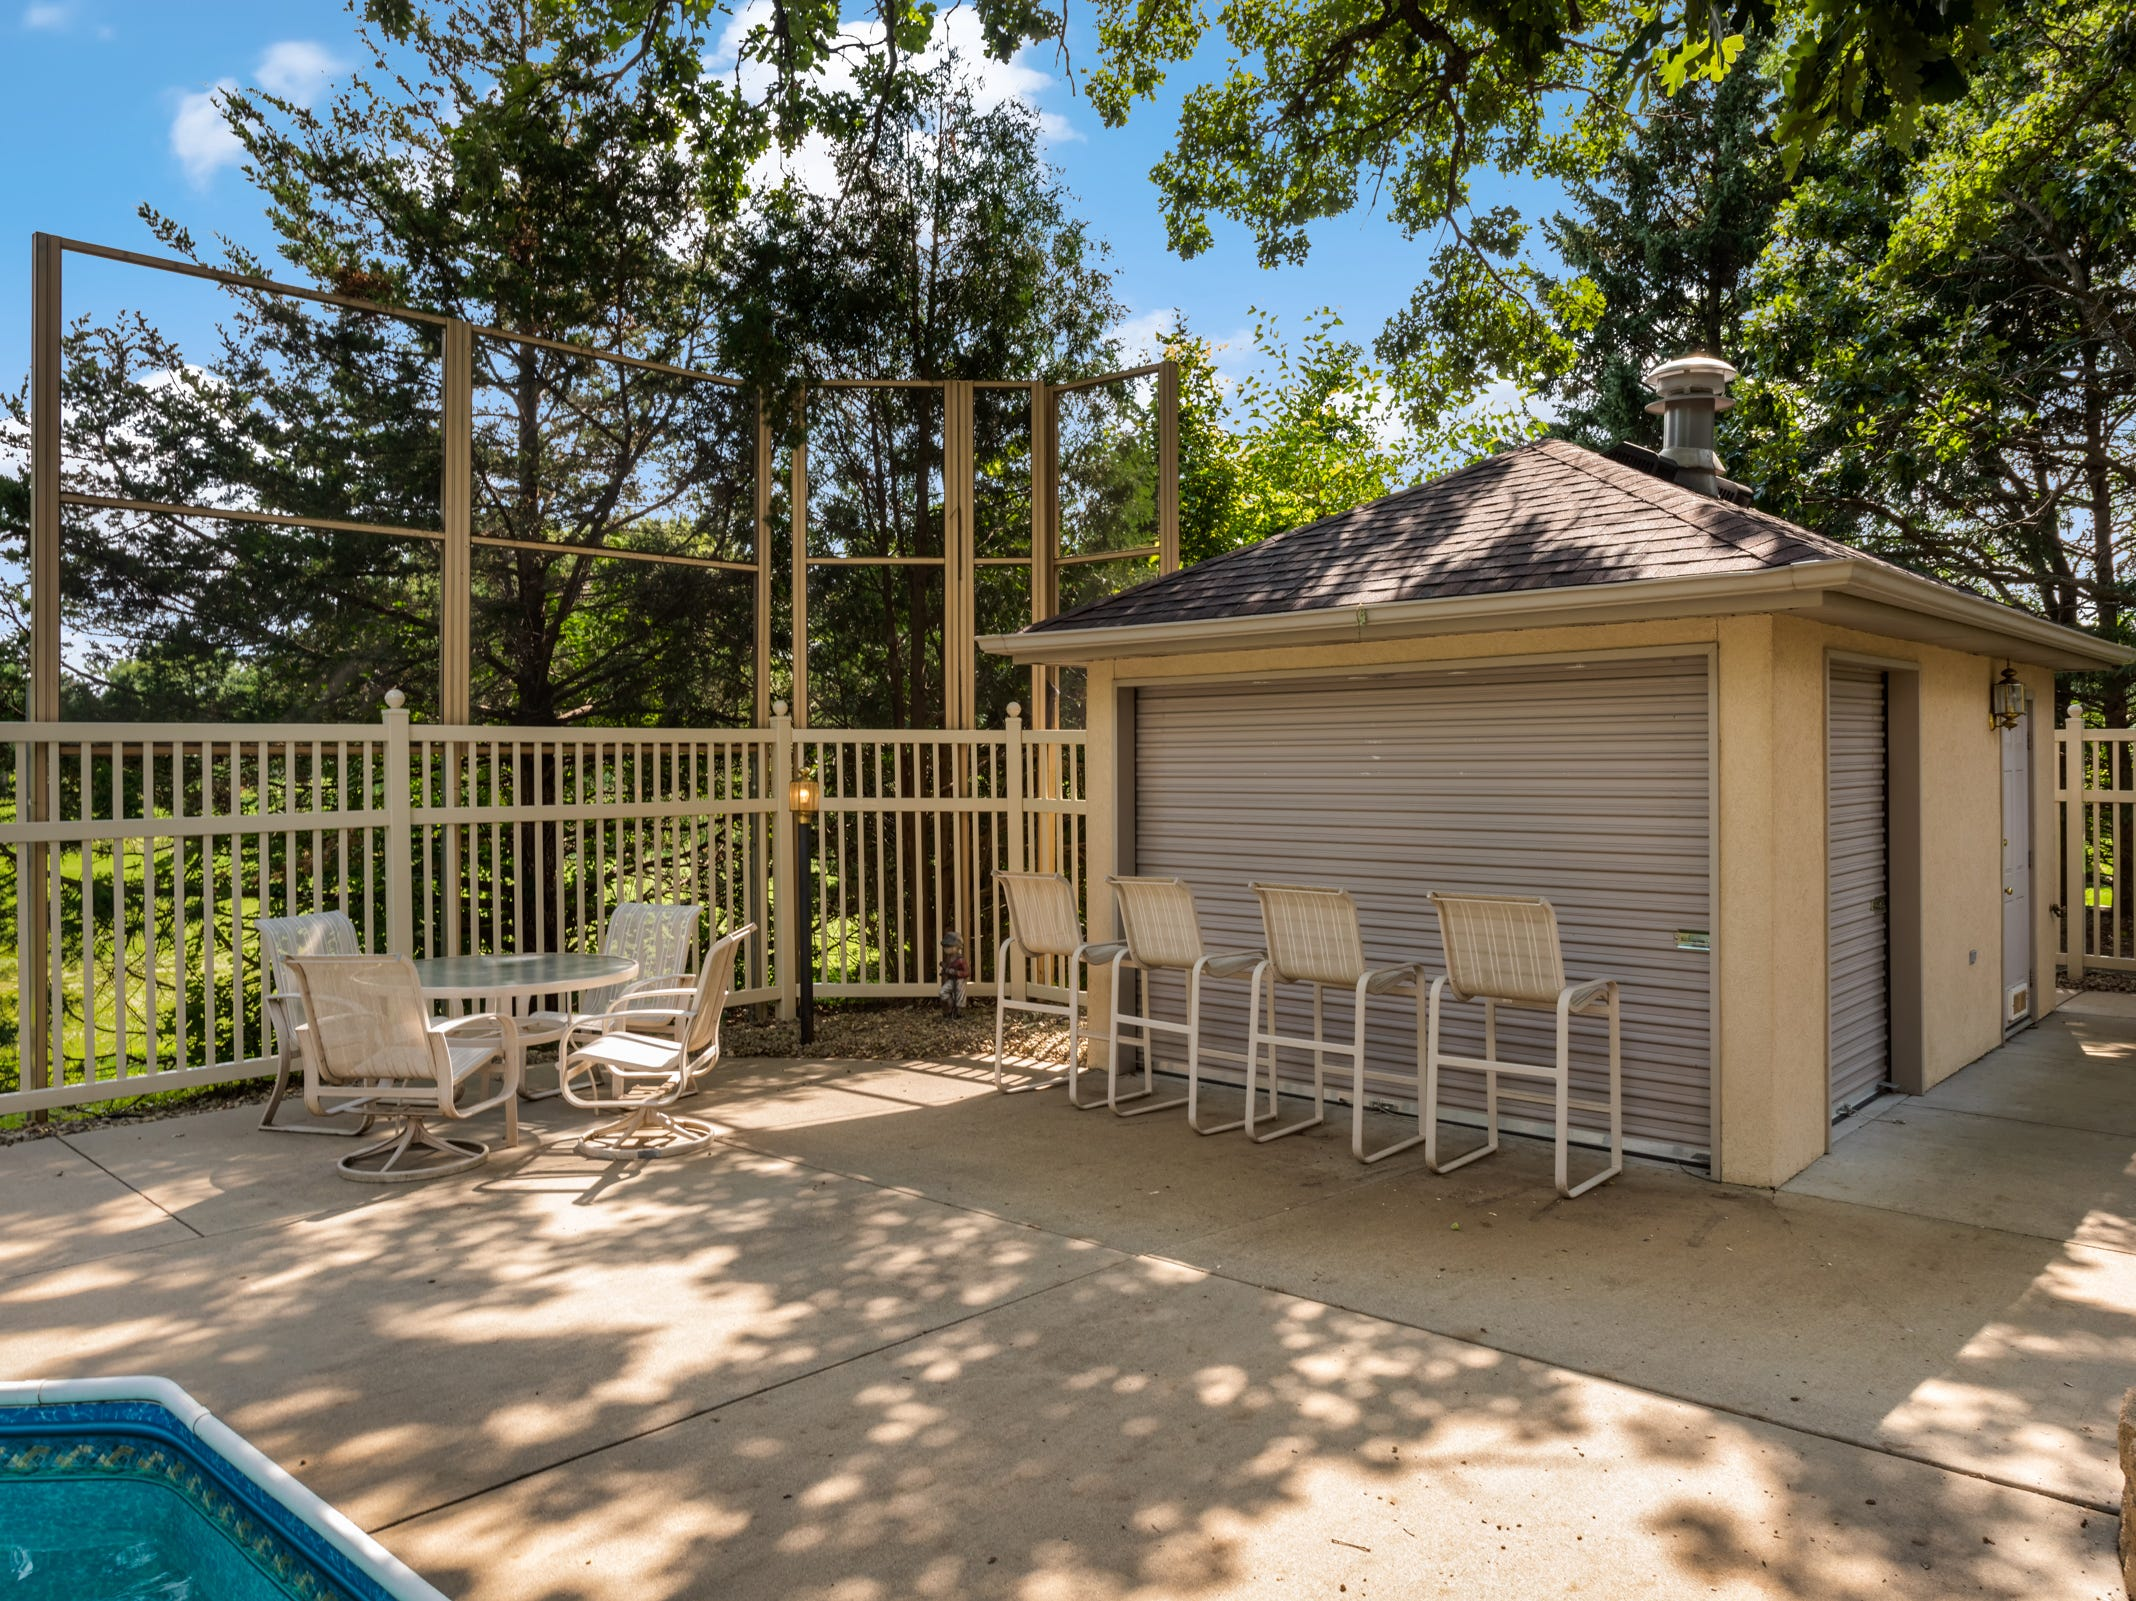 The outdoor space has a pool house featuring a ¾ bath as well as a wet bar and a built-in grill.